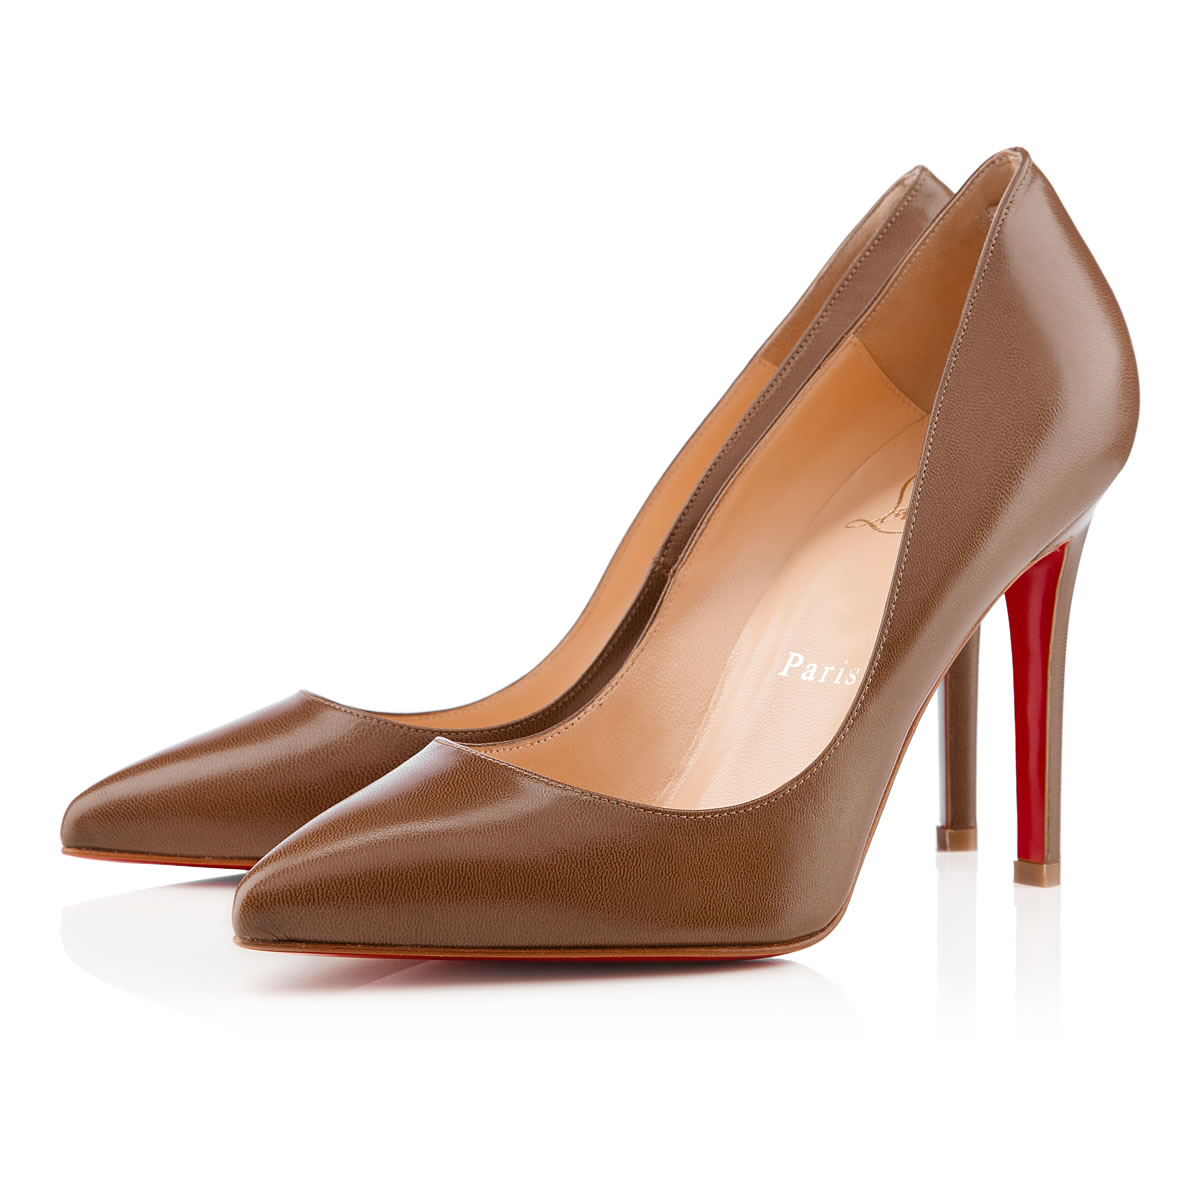 christianlouboutin-pigalle-3080519_3119_1_1200x1200.jpg